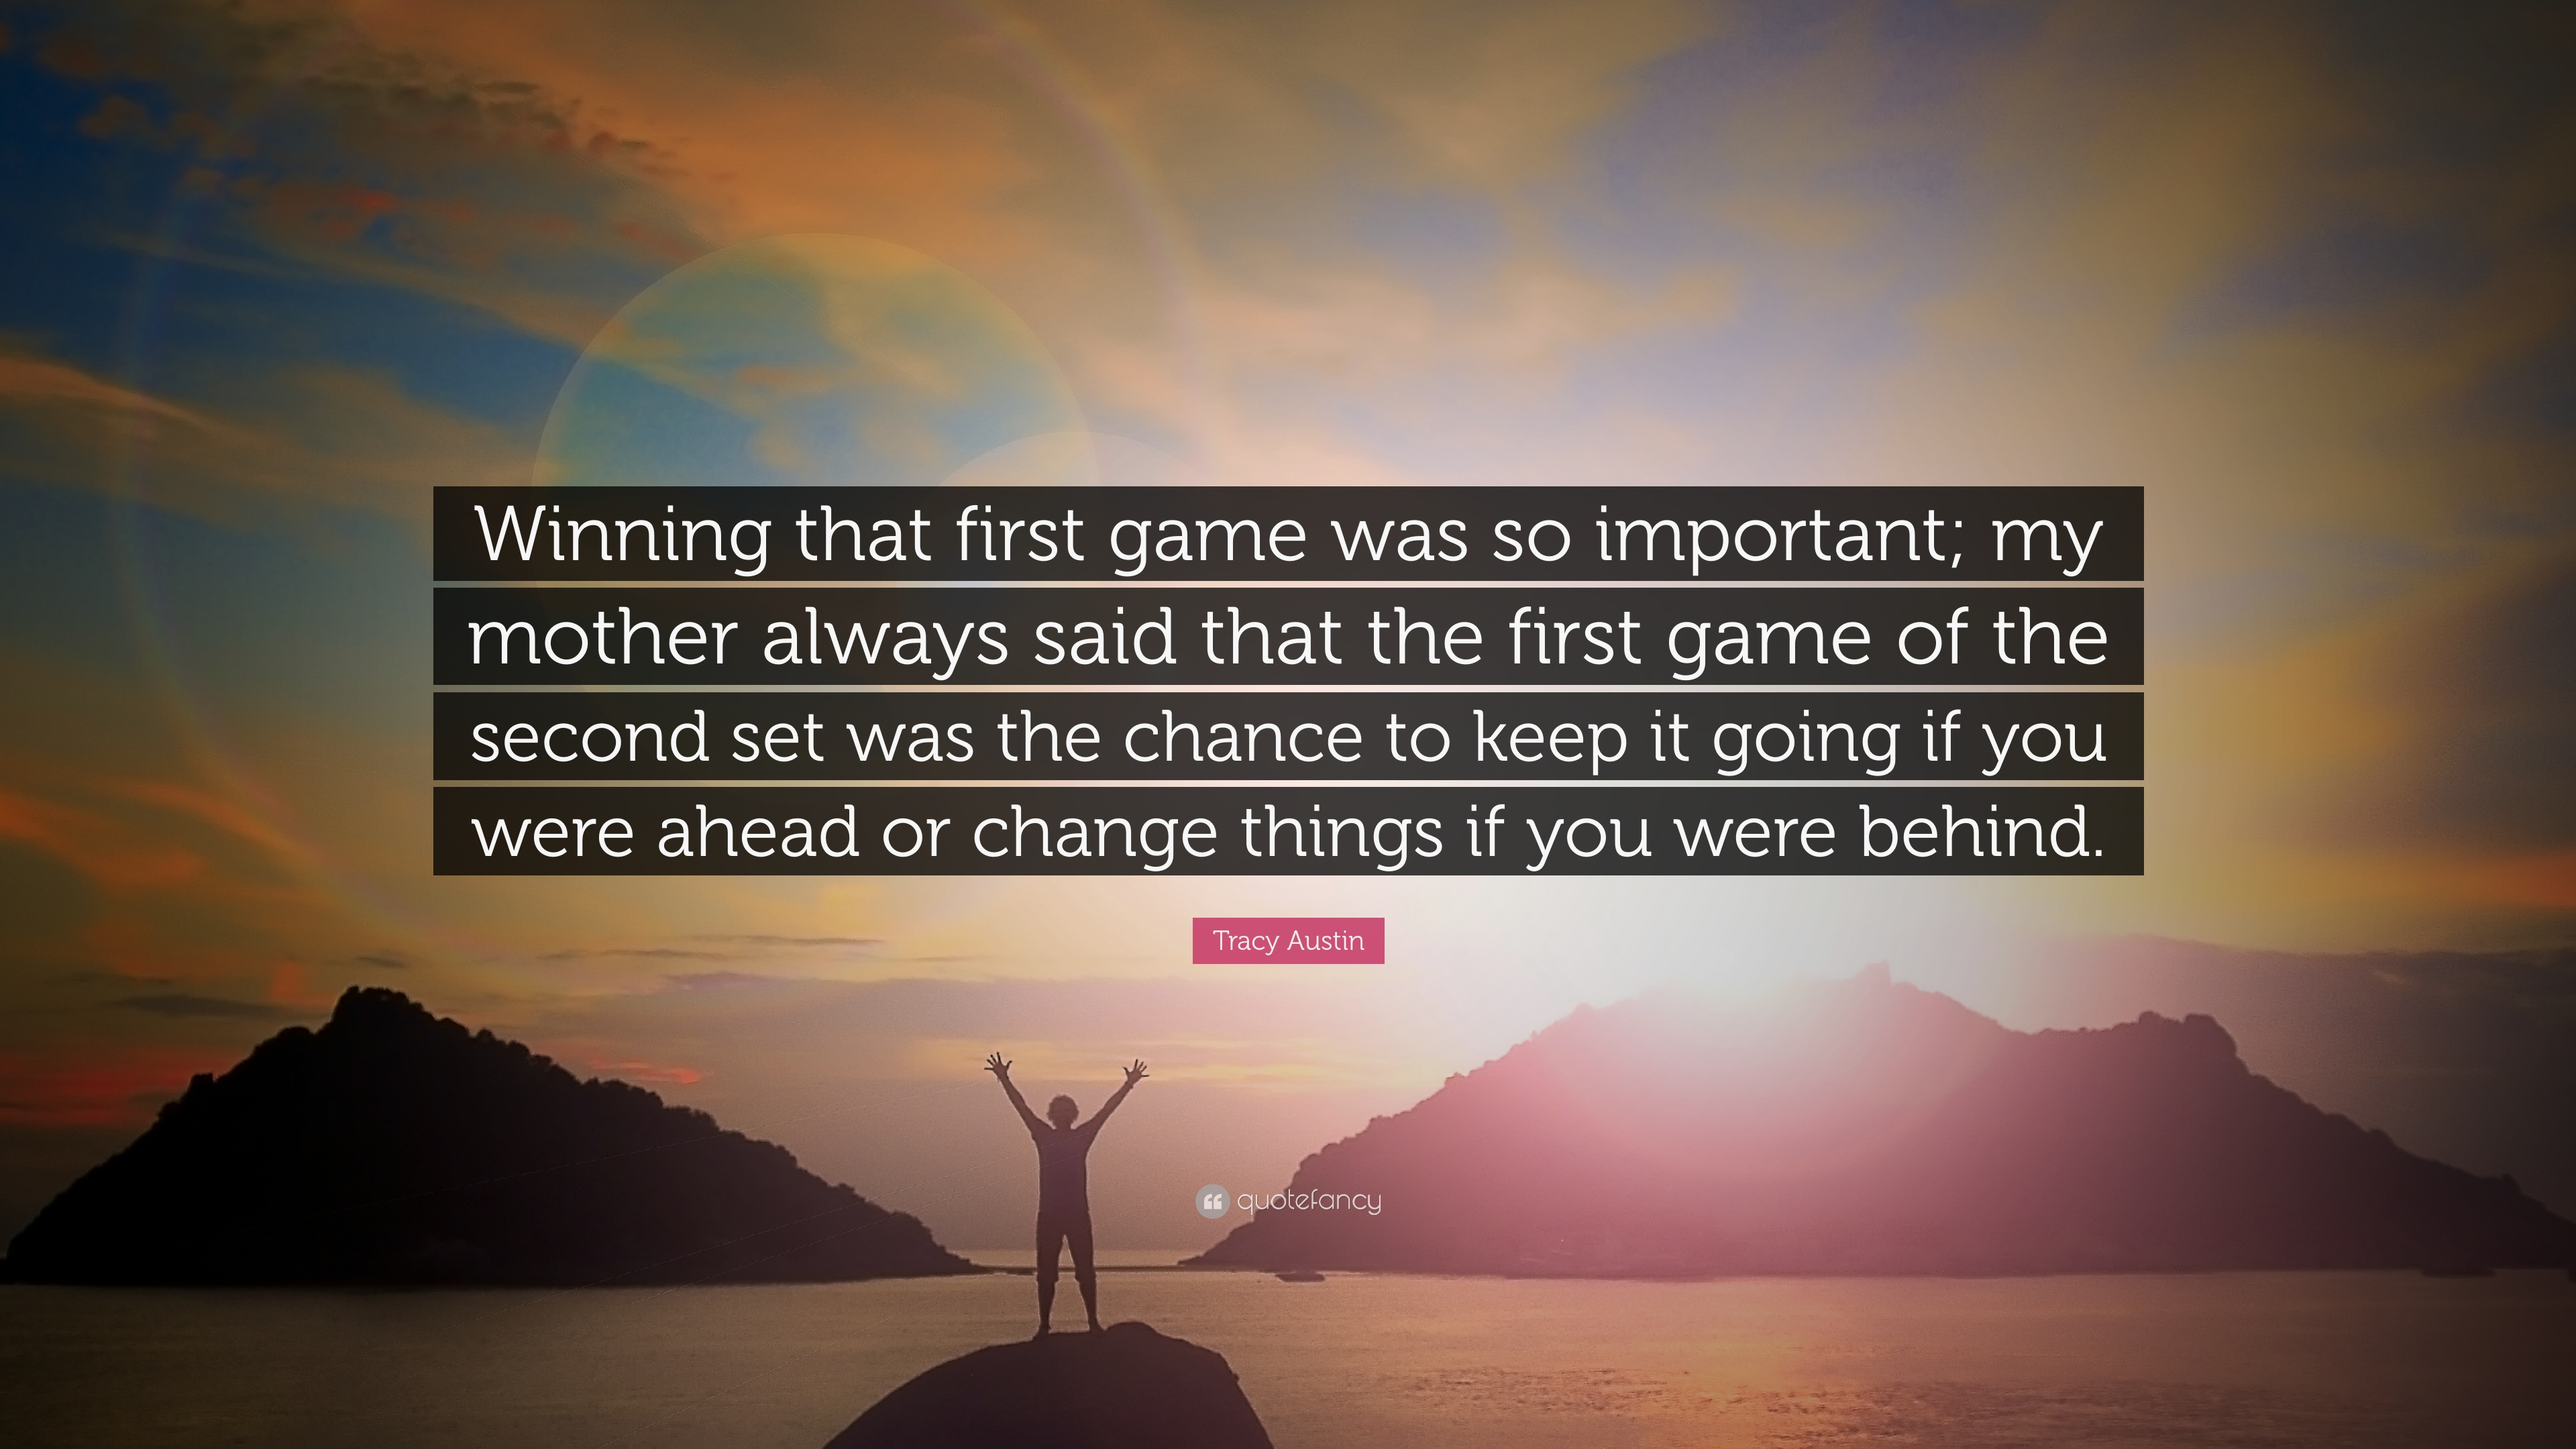 Tracy Austin Quotes (19 Wallpapers)